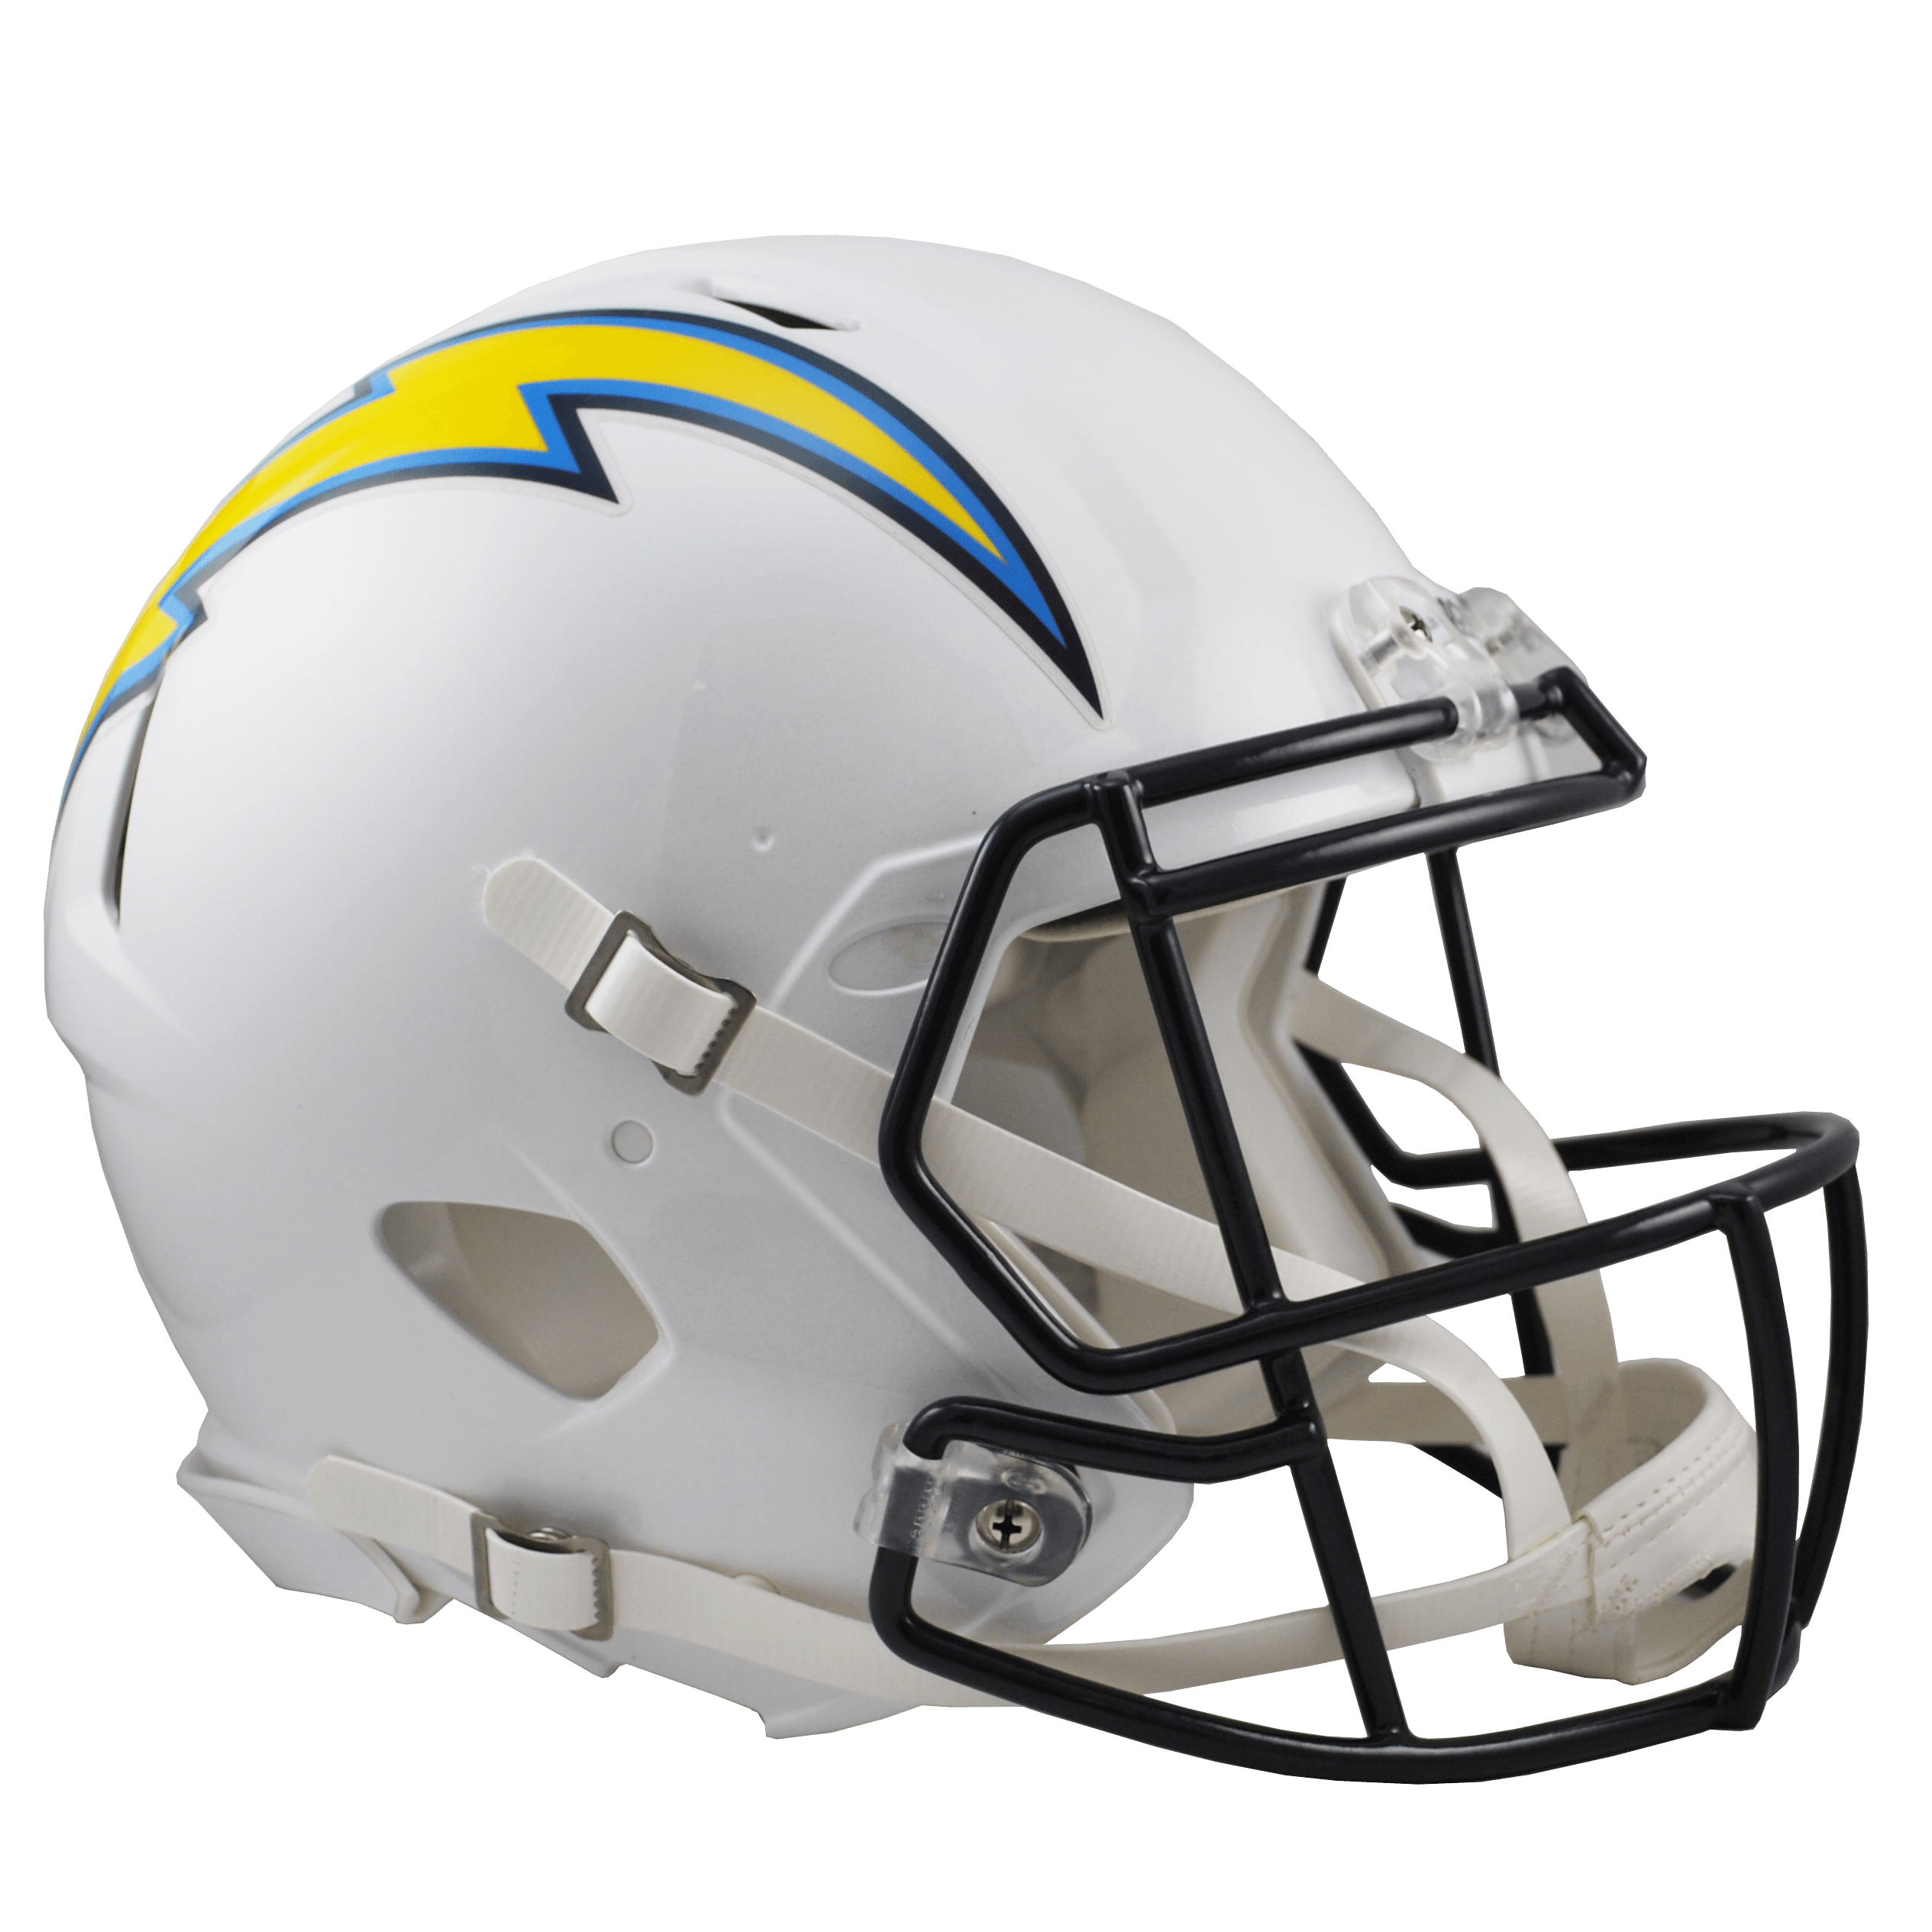 San Diego Chargers Helmets: San Diego Chargers Helmet Transparent PNG